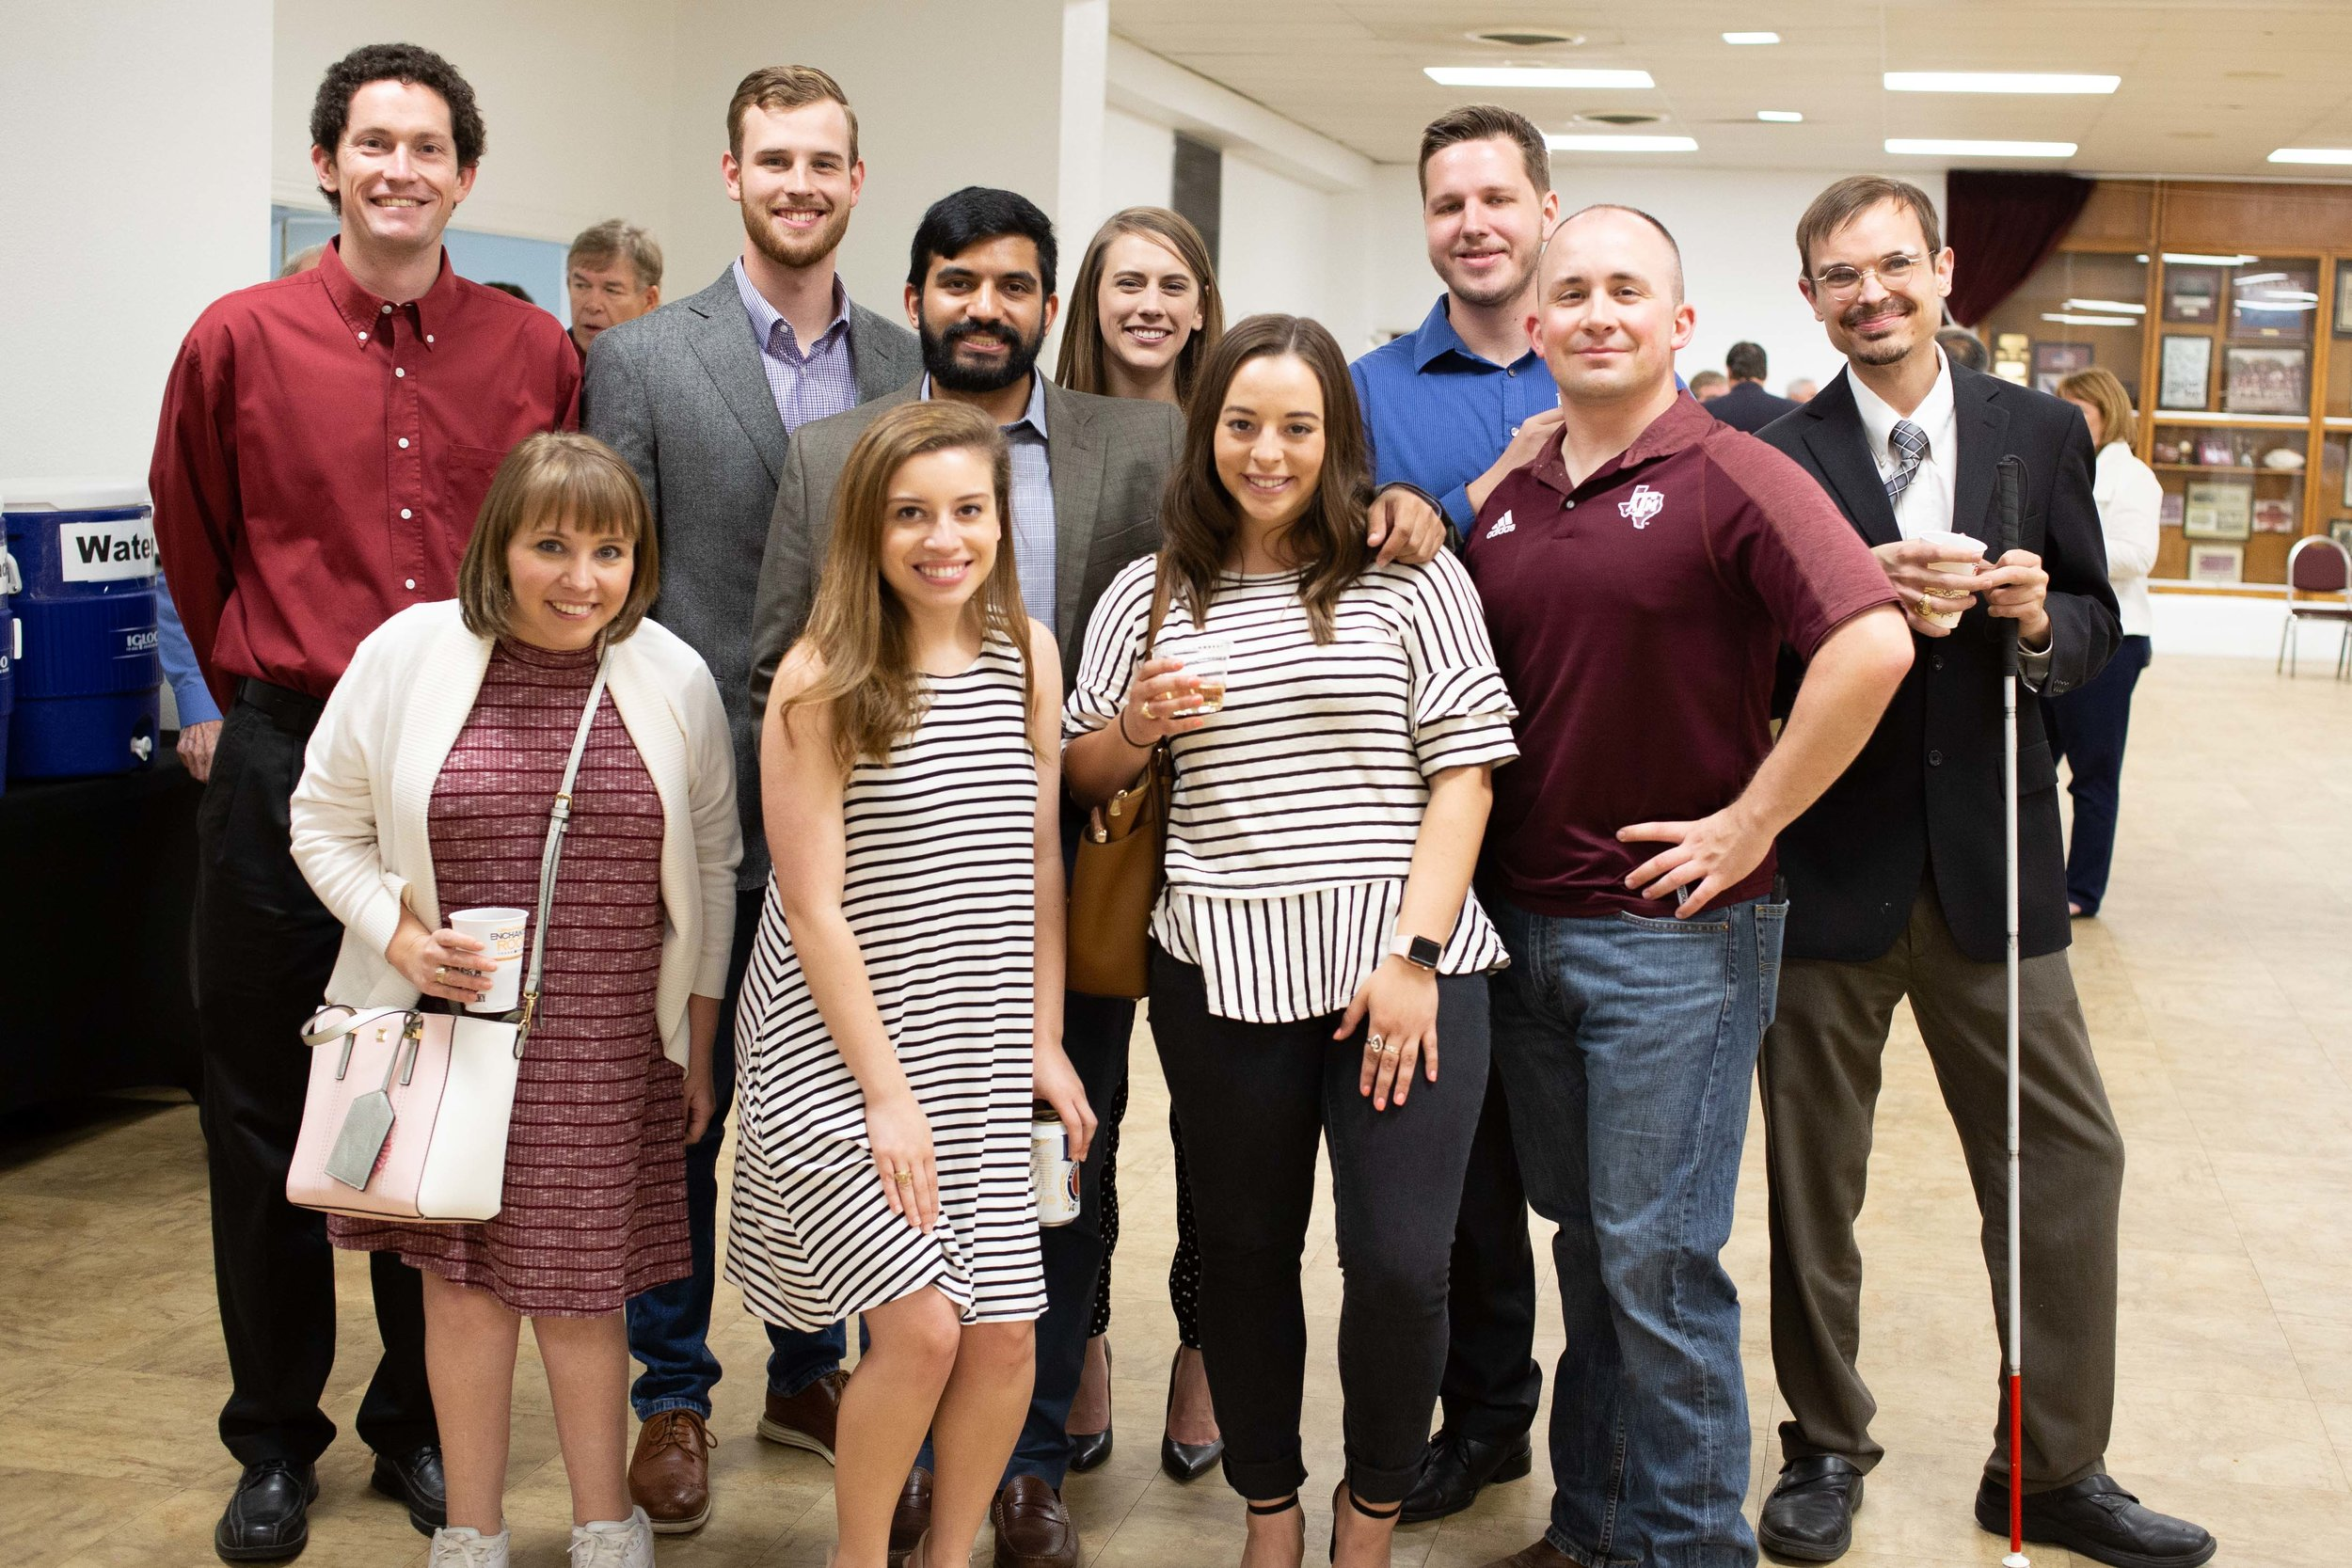 Texas A&M Former Students pose for a photo after the Muster ceremony. (Photo by  GA Media Media Productions .)